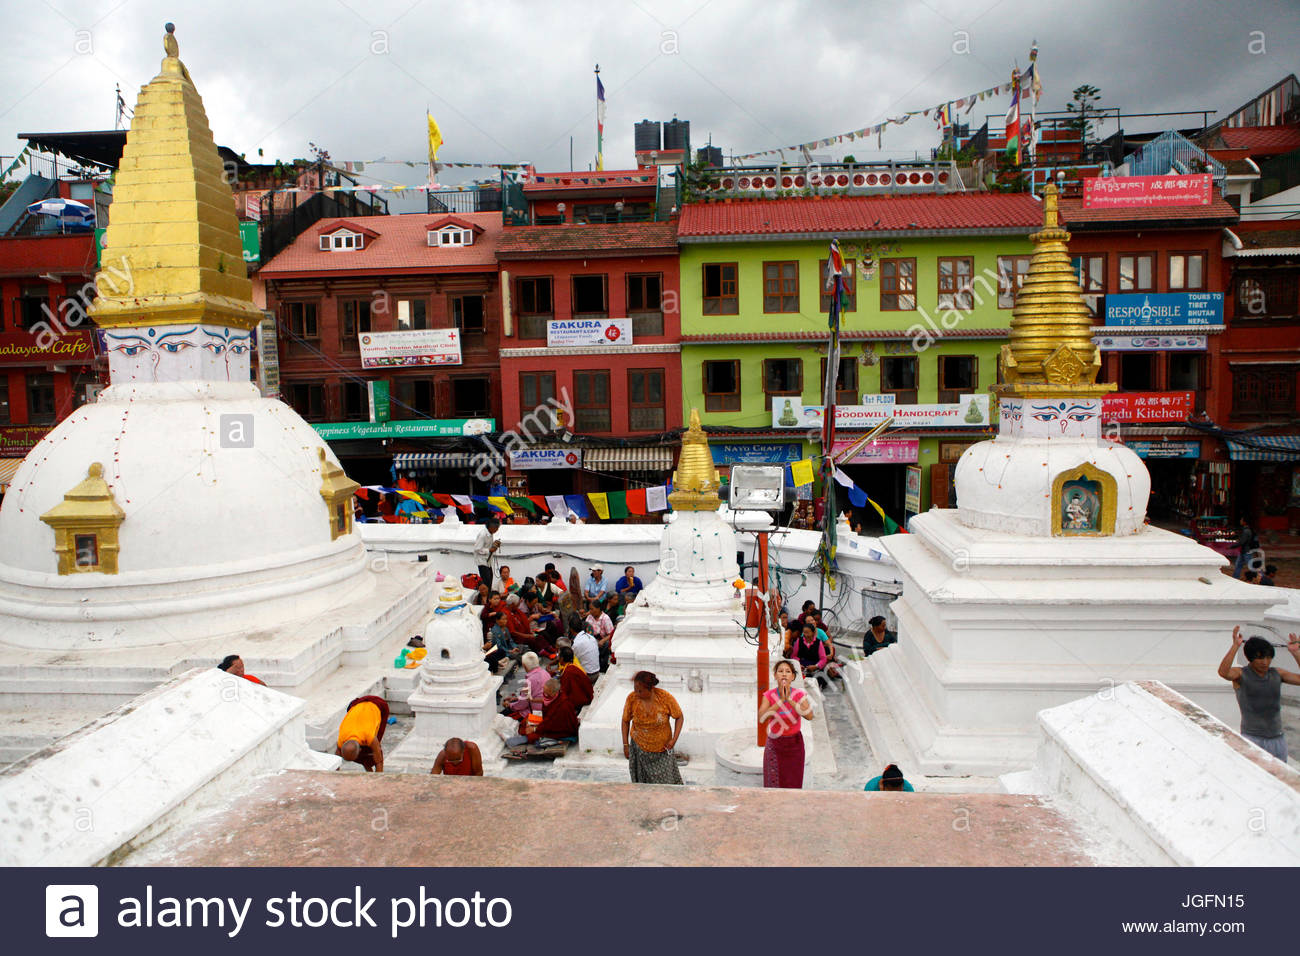 View from Boudhanath Stupa of people prostrating (praying). - Stock Image